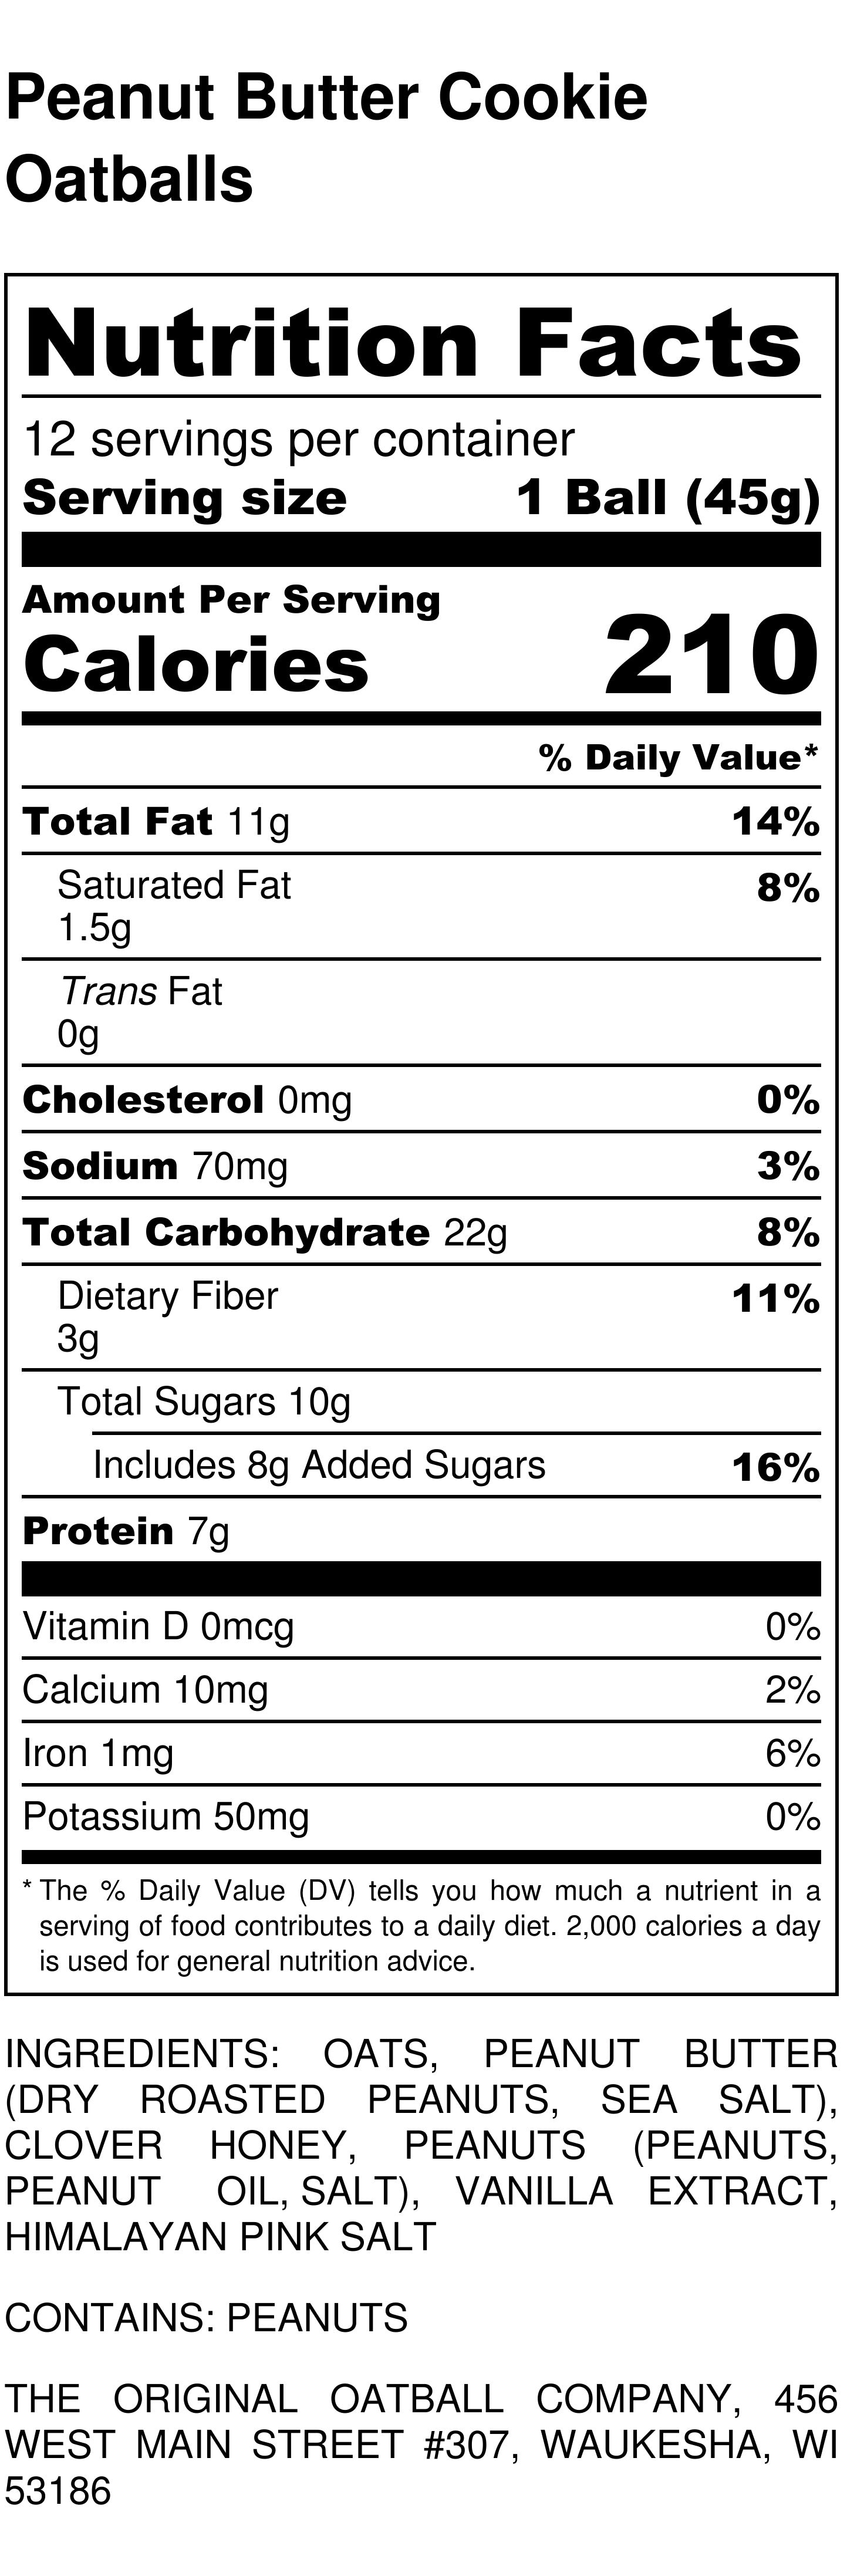 Peanut Butter Cookie Oatballs Nutrition Label